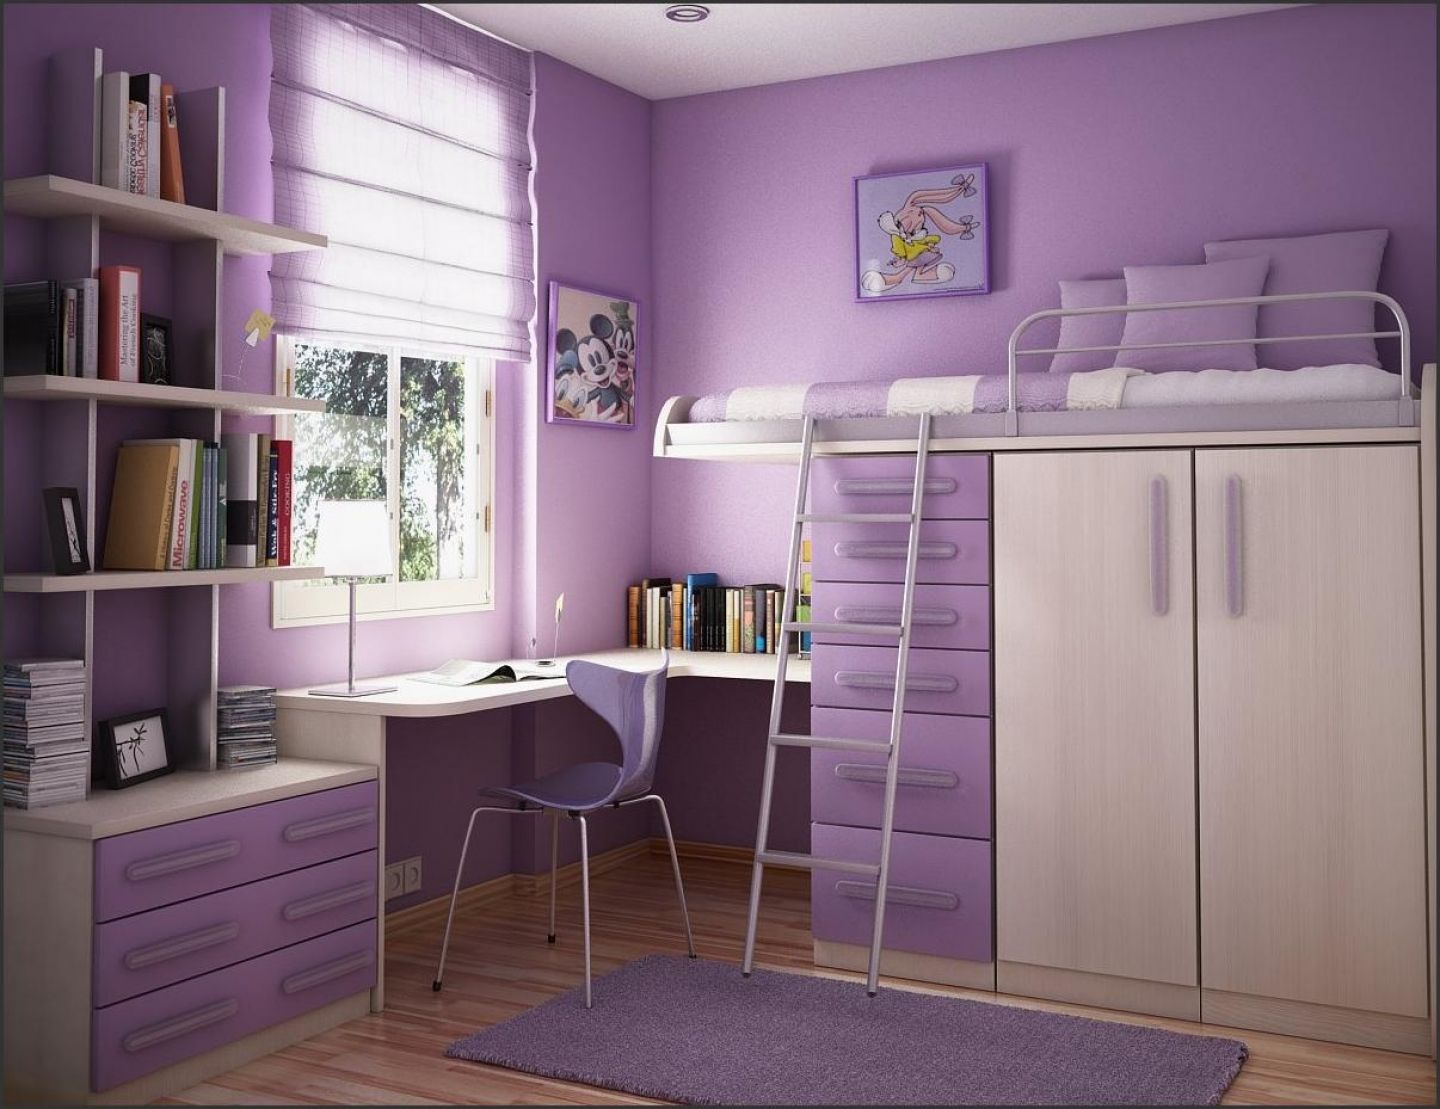 teen girl bedroom decorating ideas 06 13 14 03 58 bedroom 7 teenage girl bedroom ideas for small rooms images okay i don t like the color but the idea is so cool